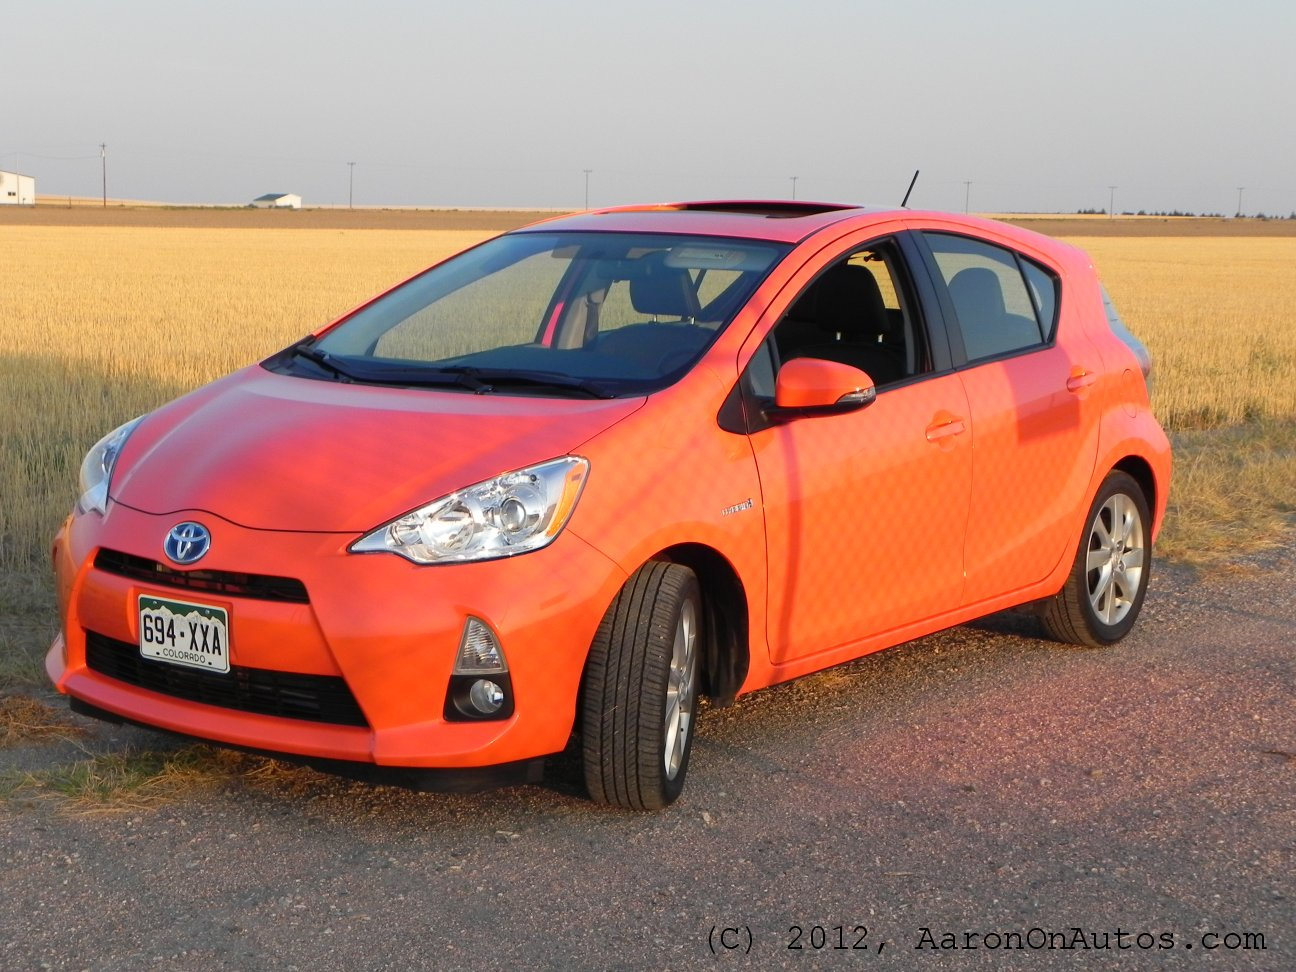 2012Priusc-leftfront-field